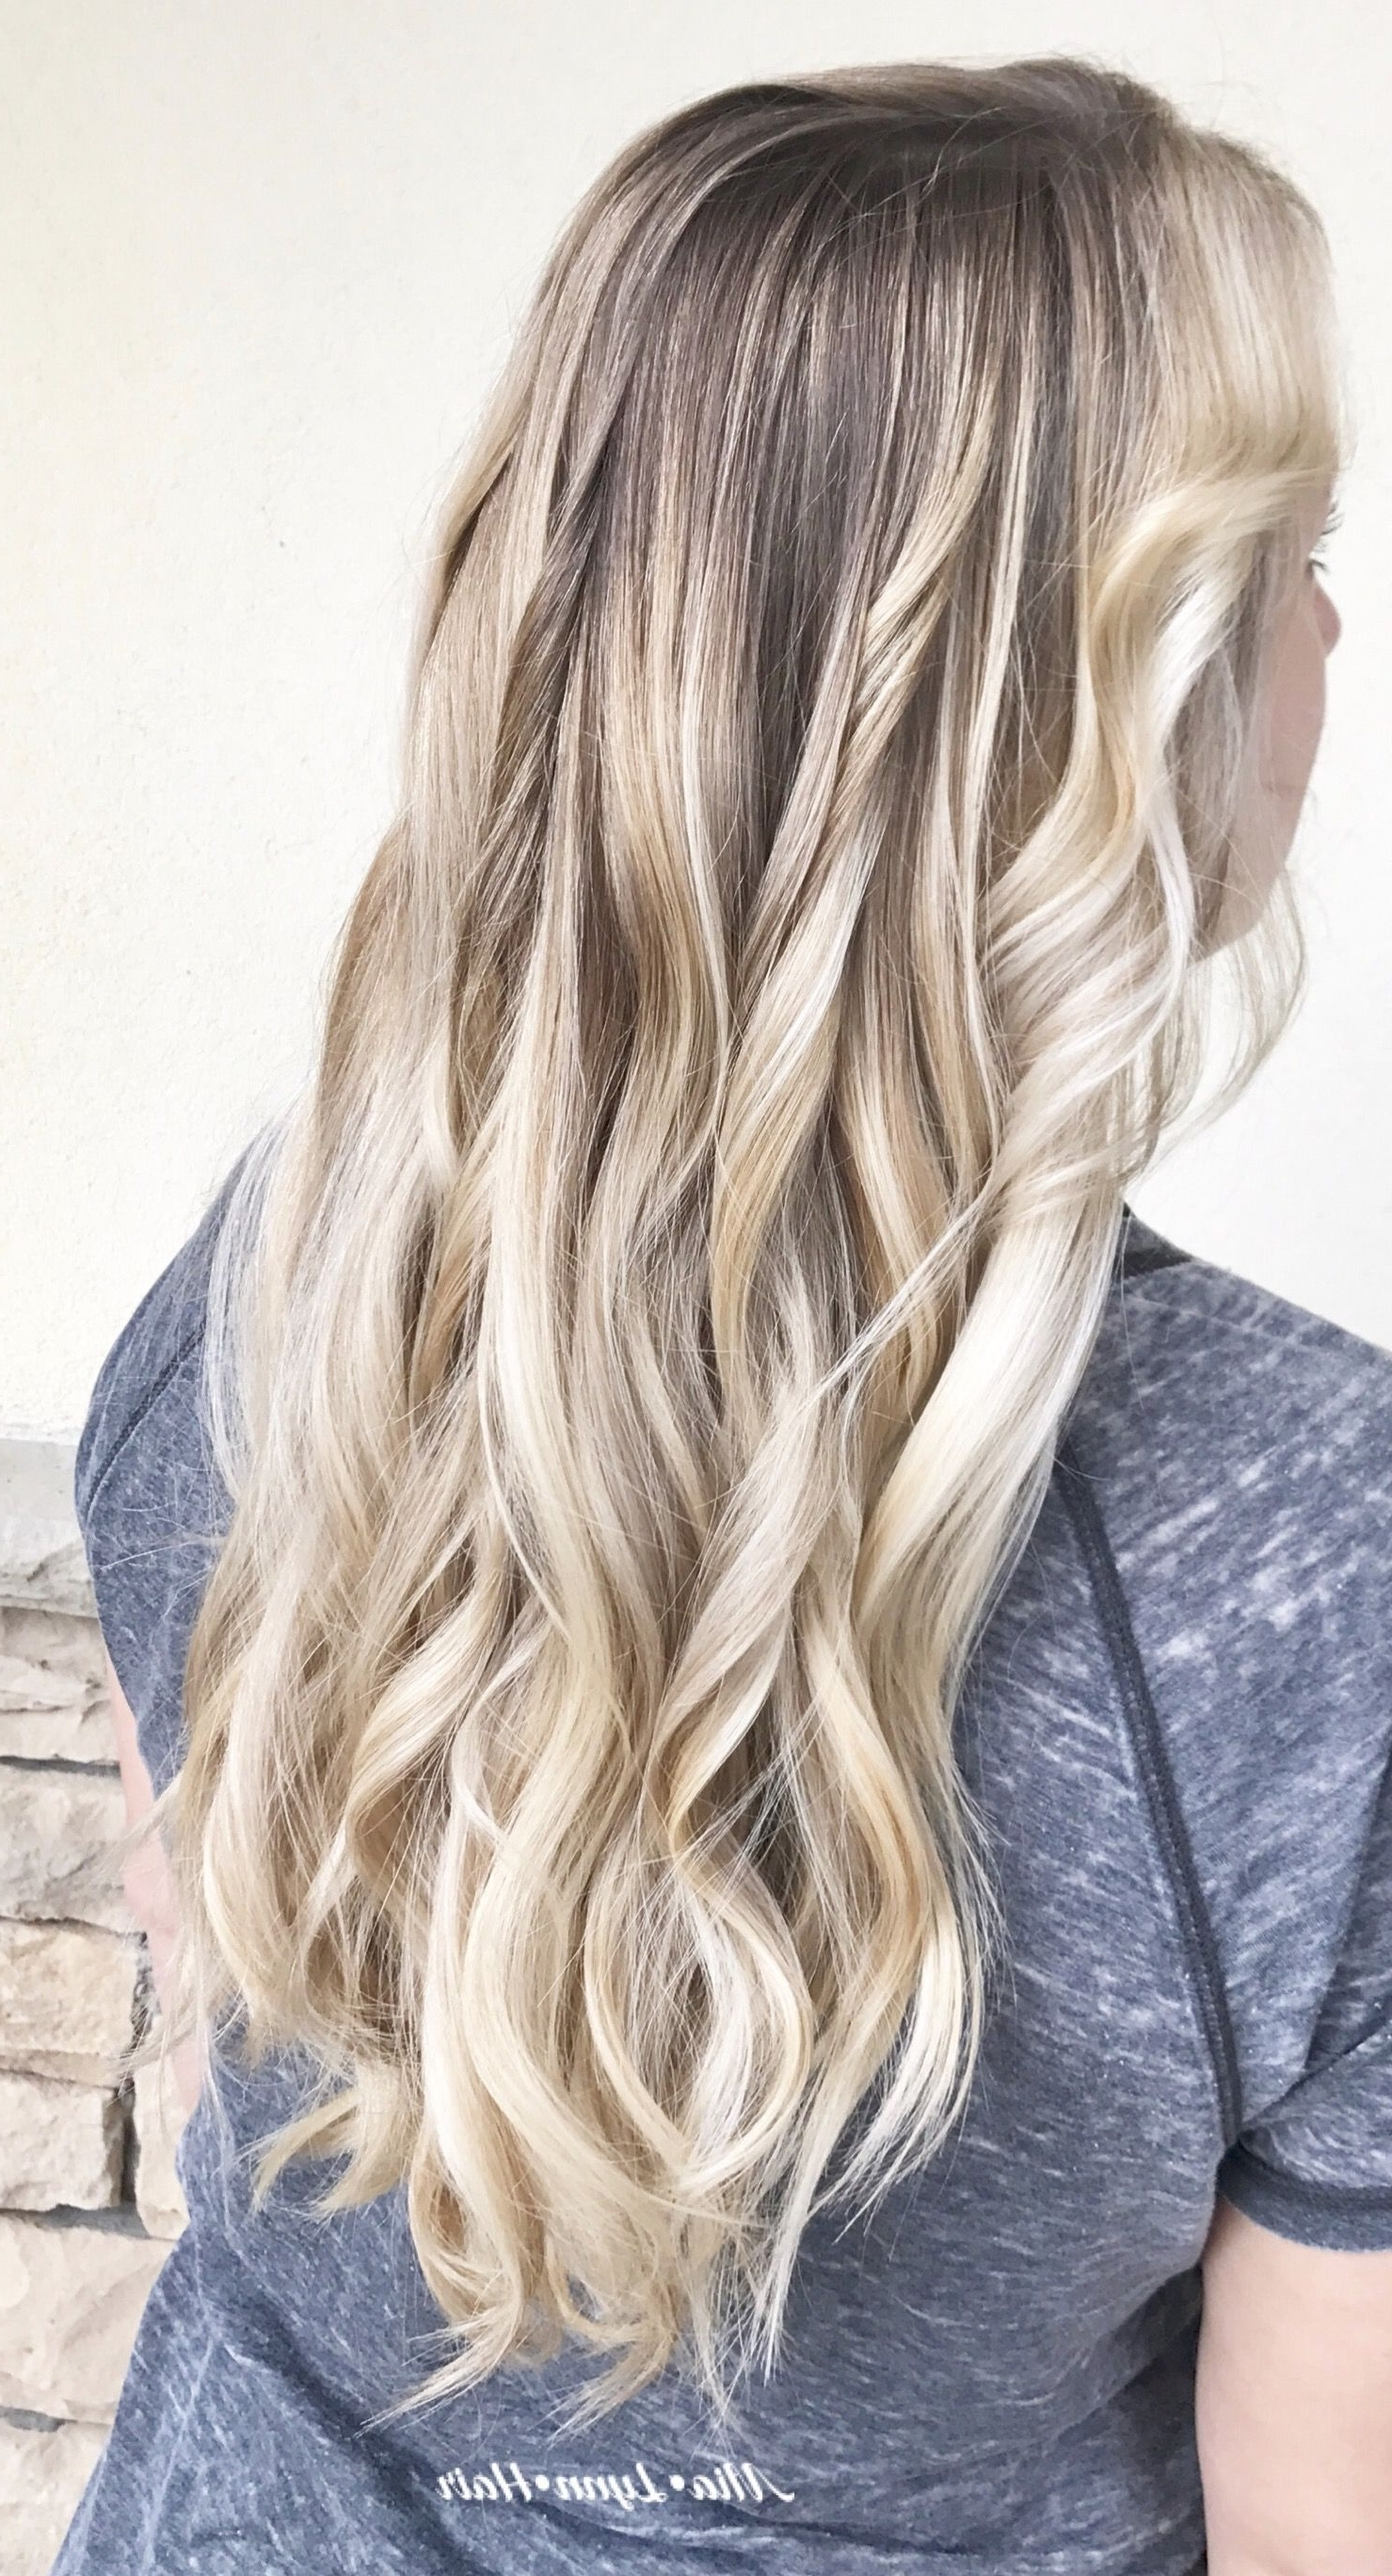 Most Popular Icy Ombre Waves Blonde Hairstyles Throughout Blonde Hair, Blonde, Waves, Painted Hair, Blonde Balayage, Sombre (View 10 of 20)